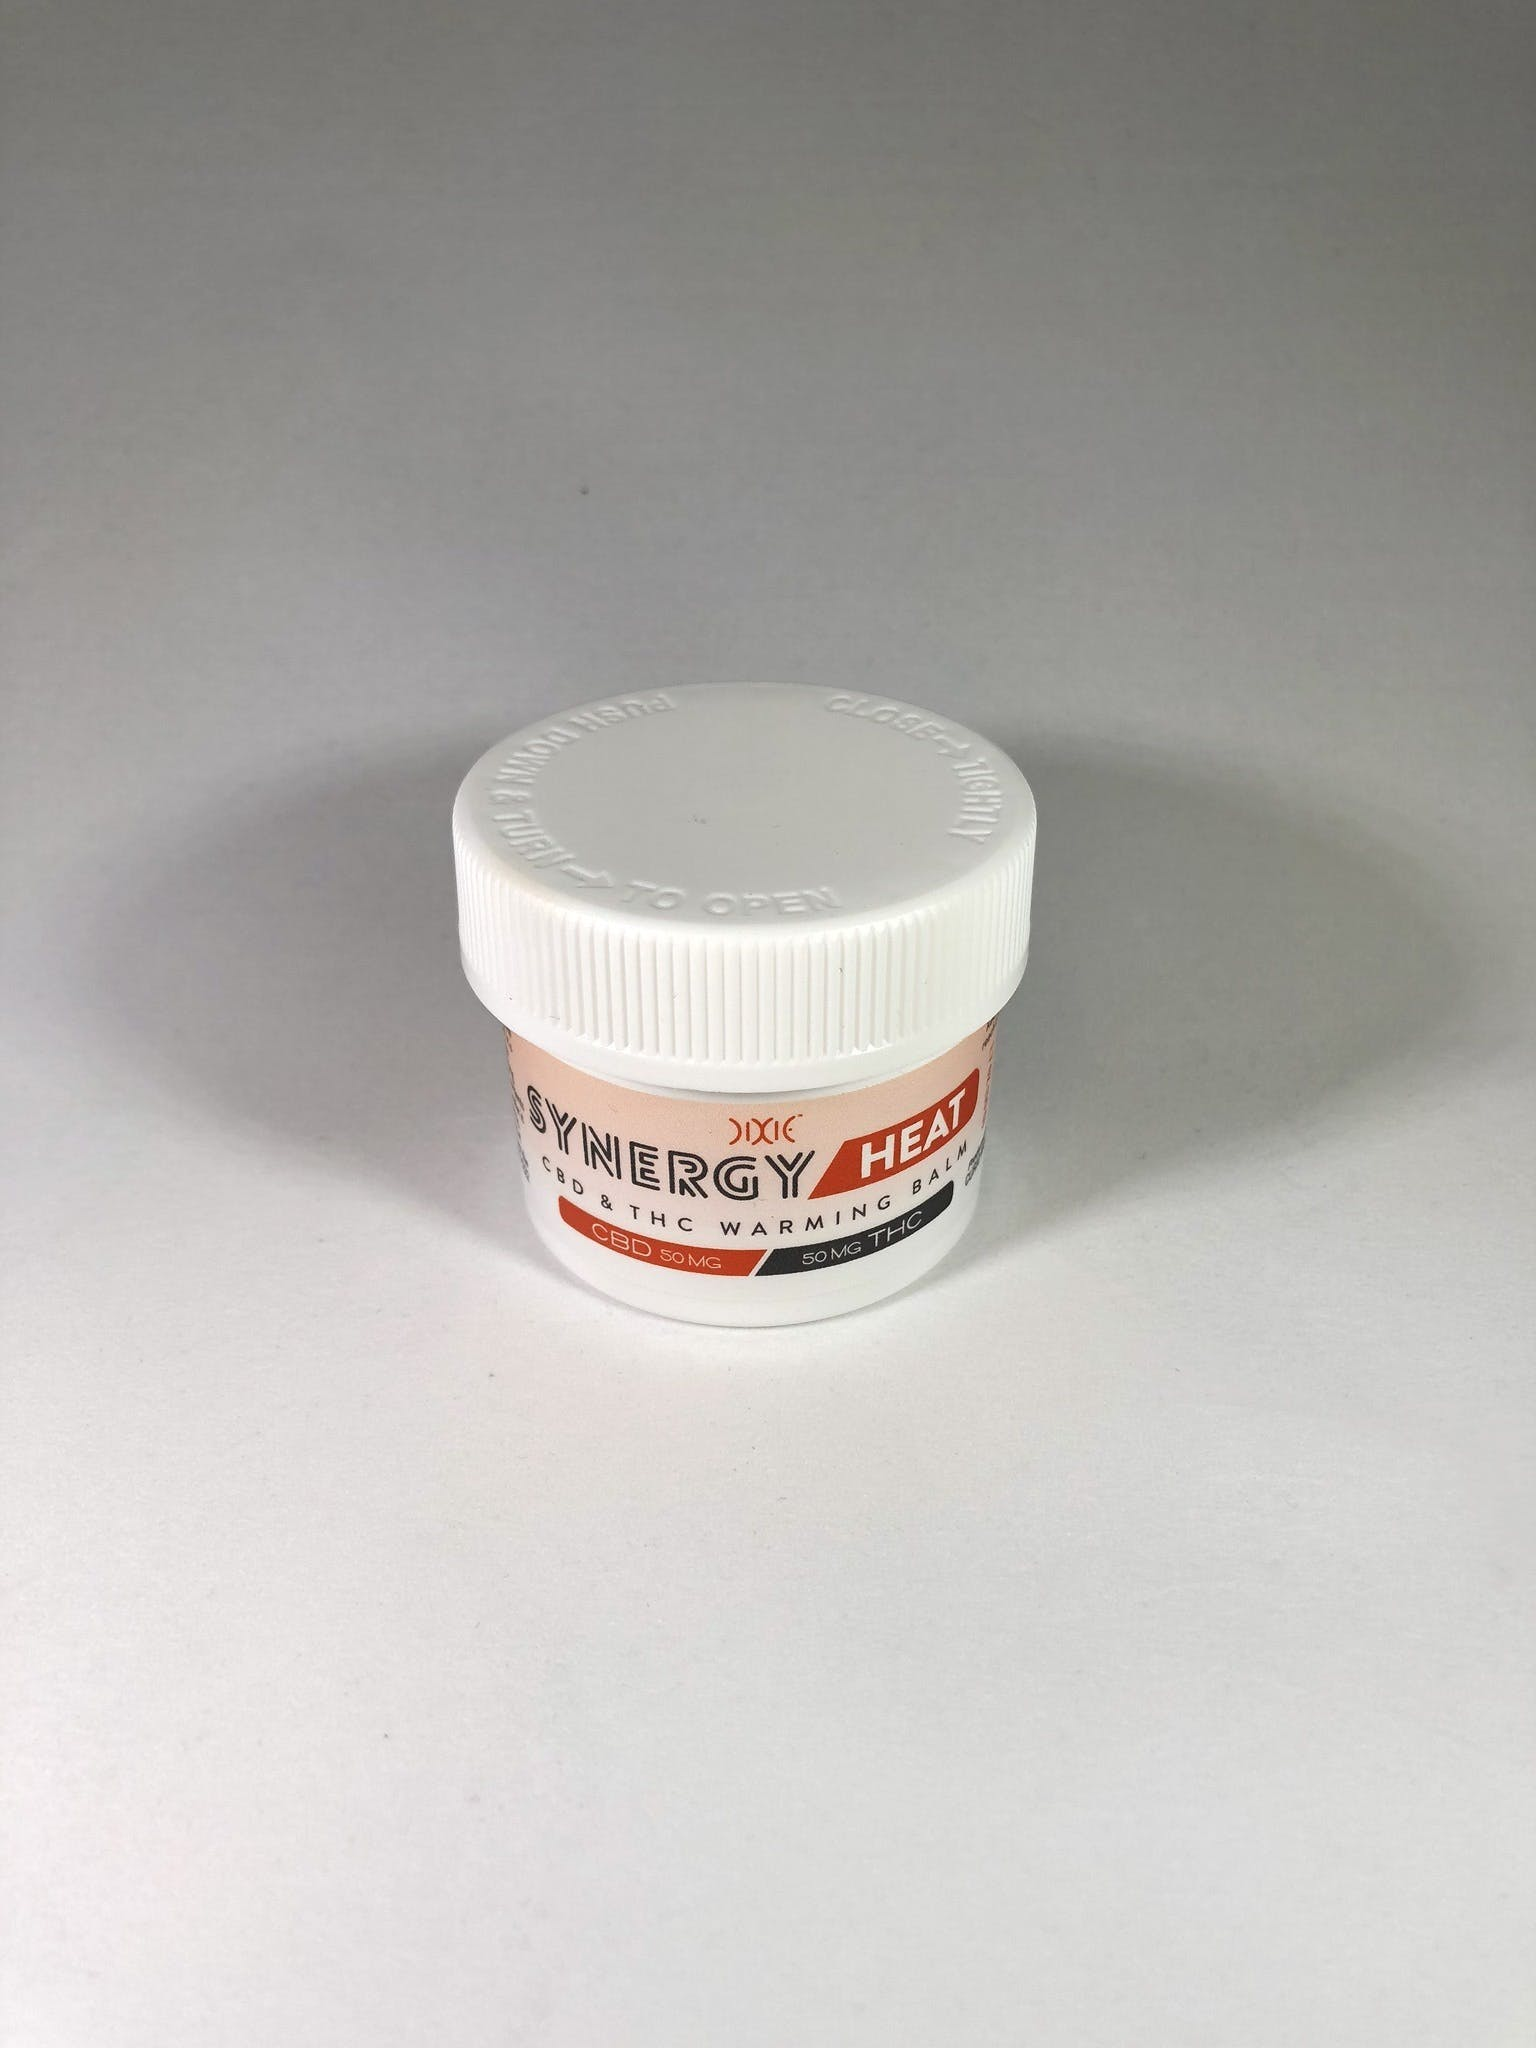 topicals-dixie-synergy-warming-topical-balm